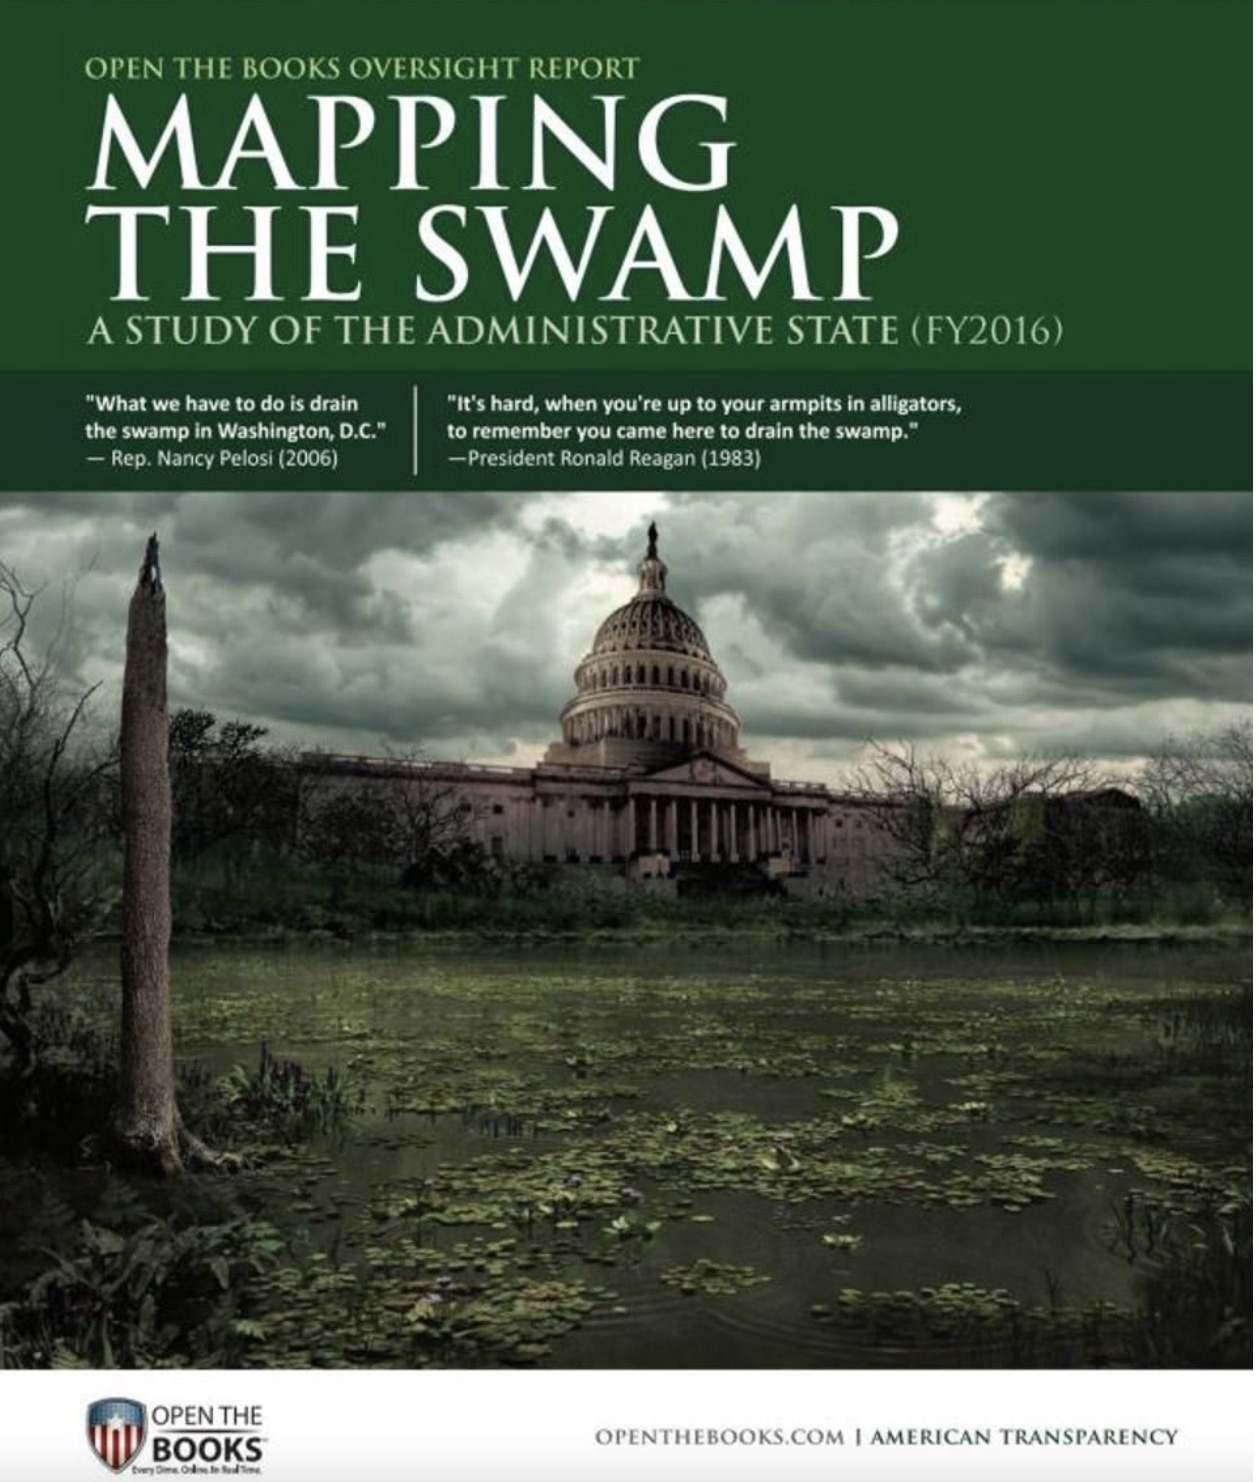 Mapping The Swamp – A Study of the Administrative State